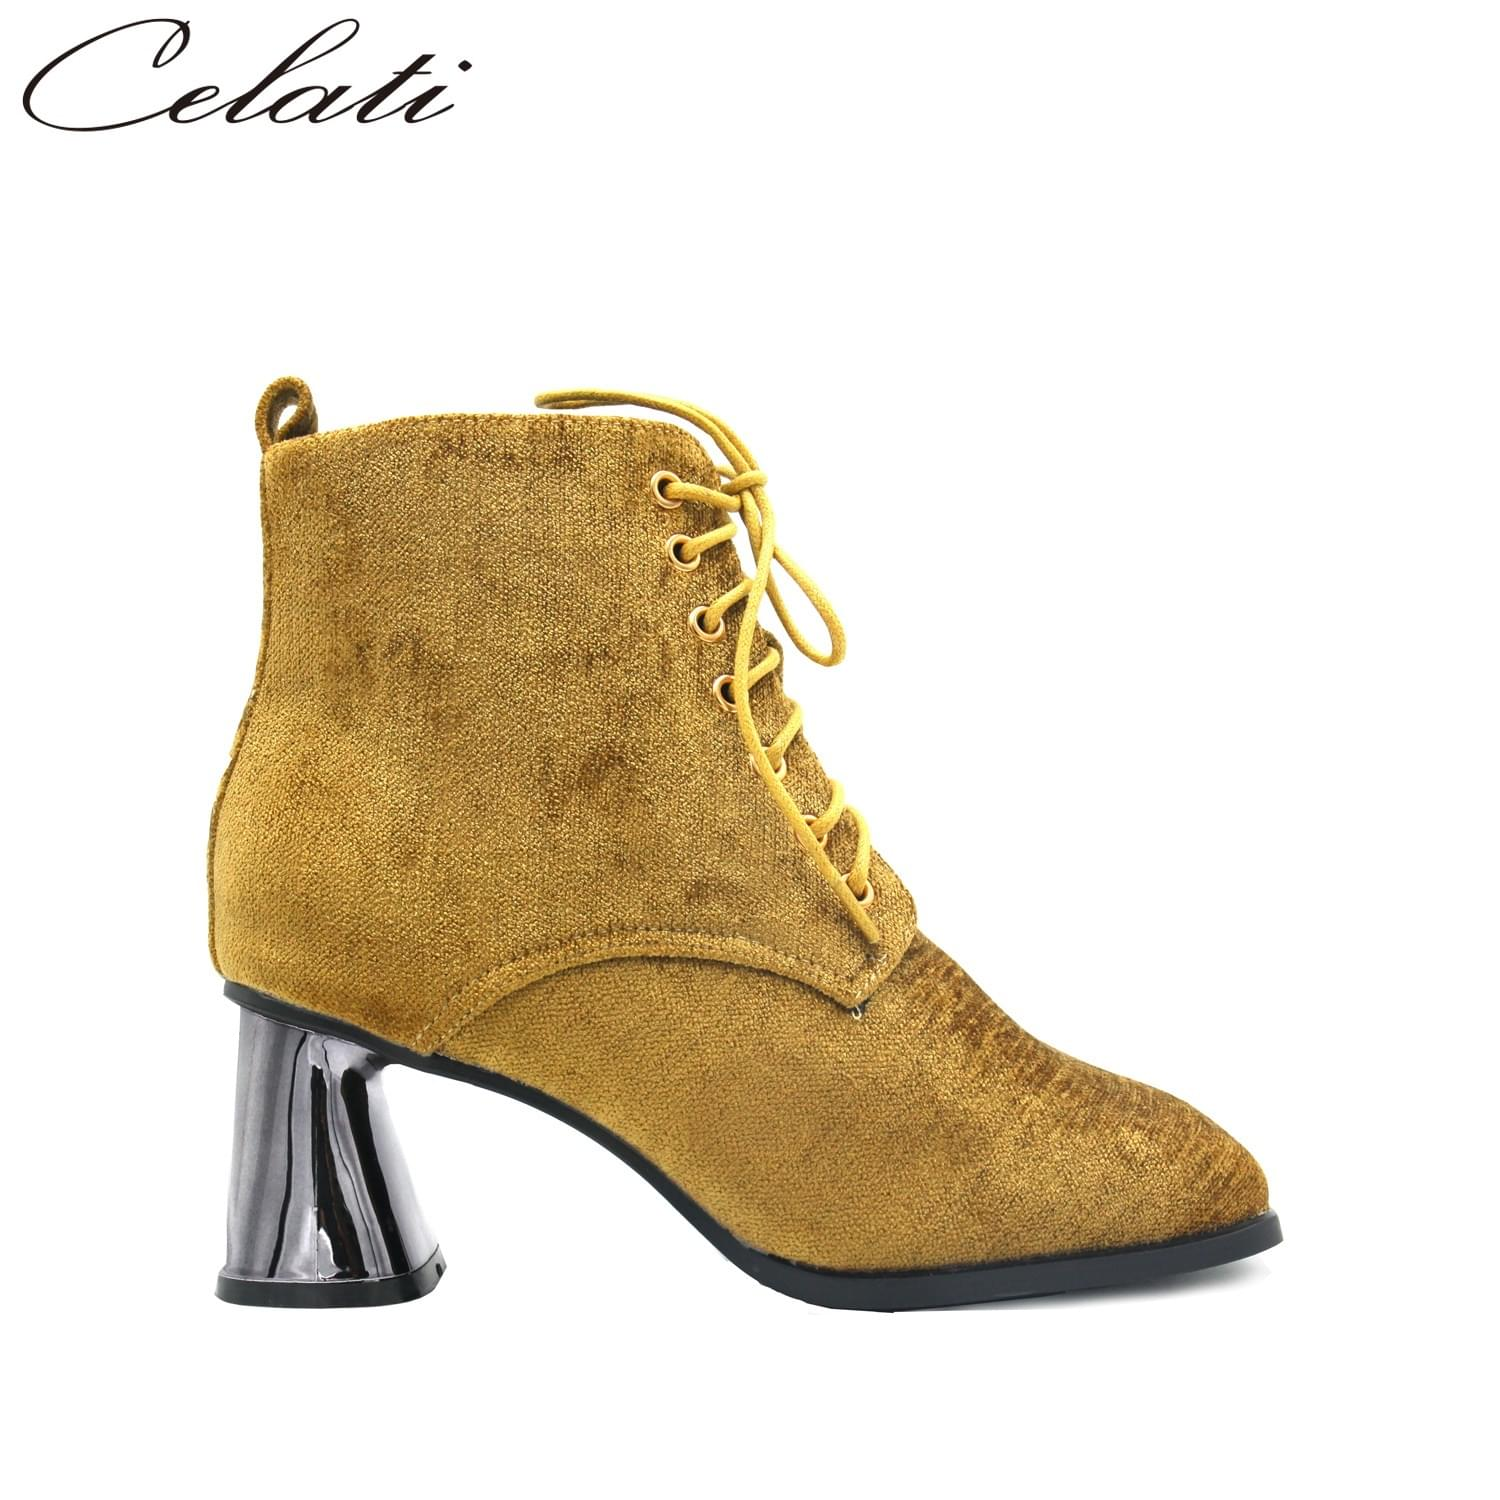 New AQ Ankle Boots G539